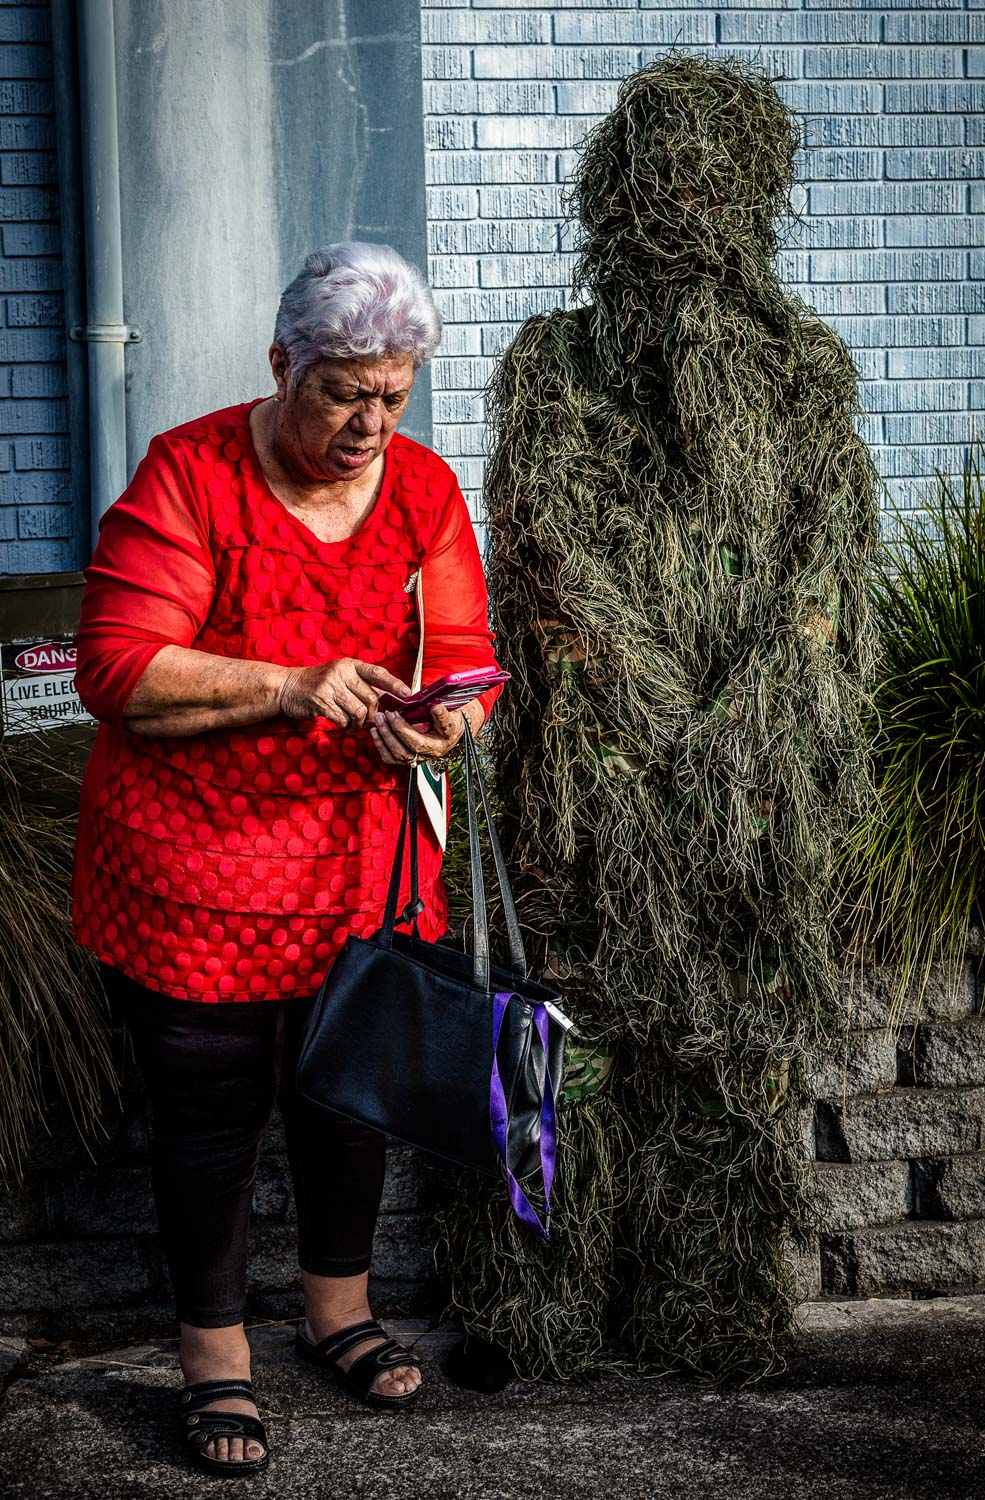 Old woman stands next to camouflage man on the street in onehunga-auckland-new zealand-spid pye_963__B6C0879.jpg